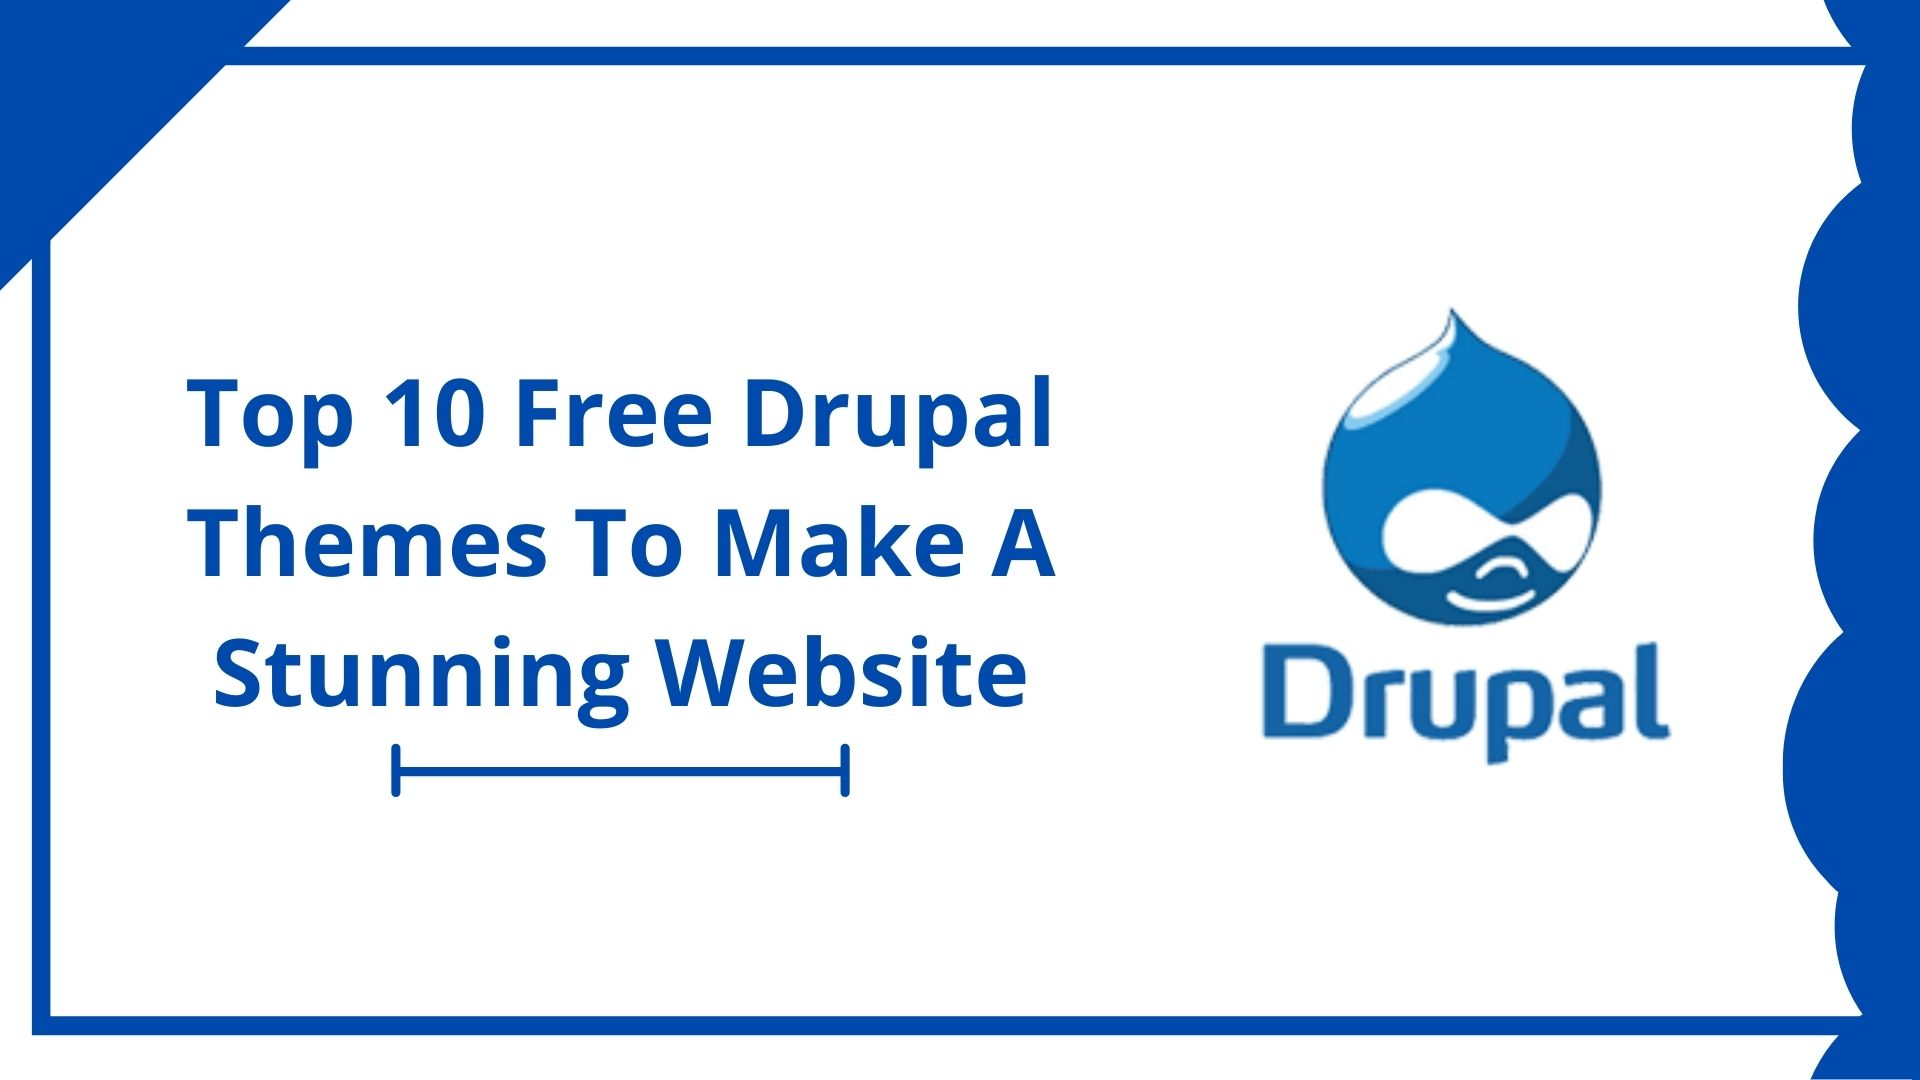 Top 10 Free Drupal Themes To Make A Stunning Website